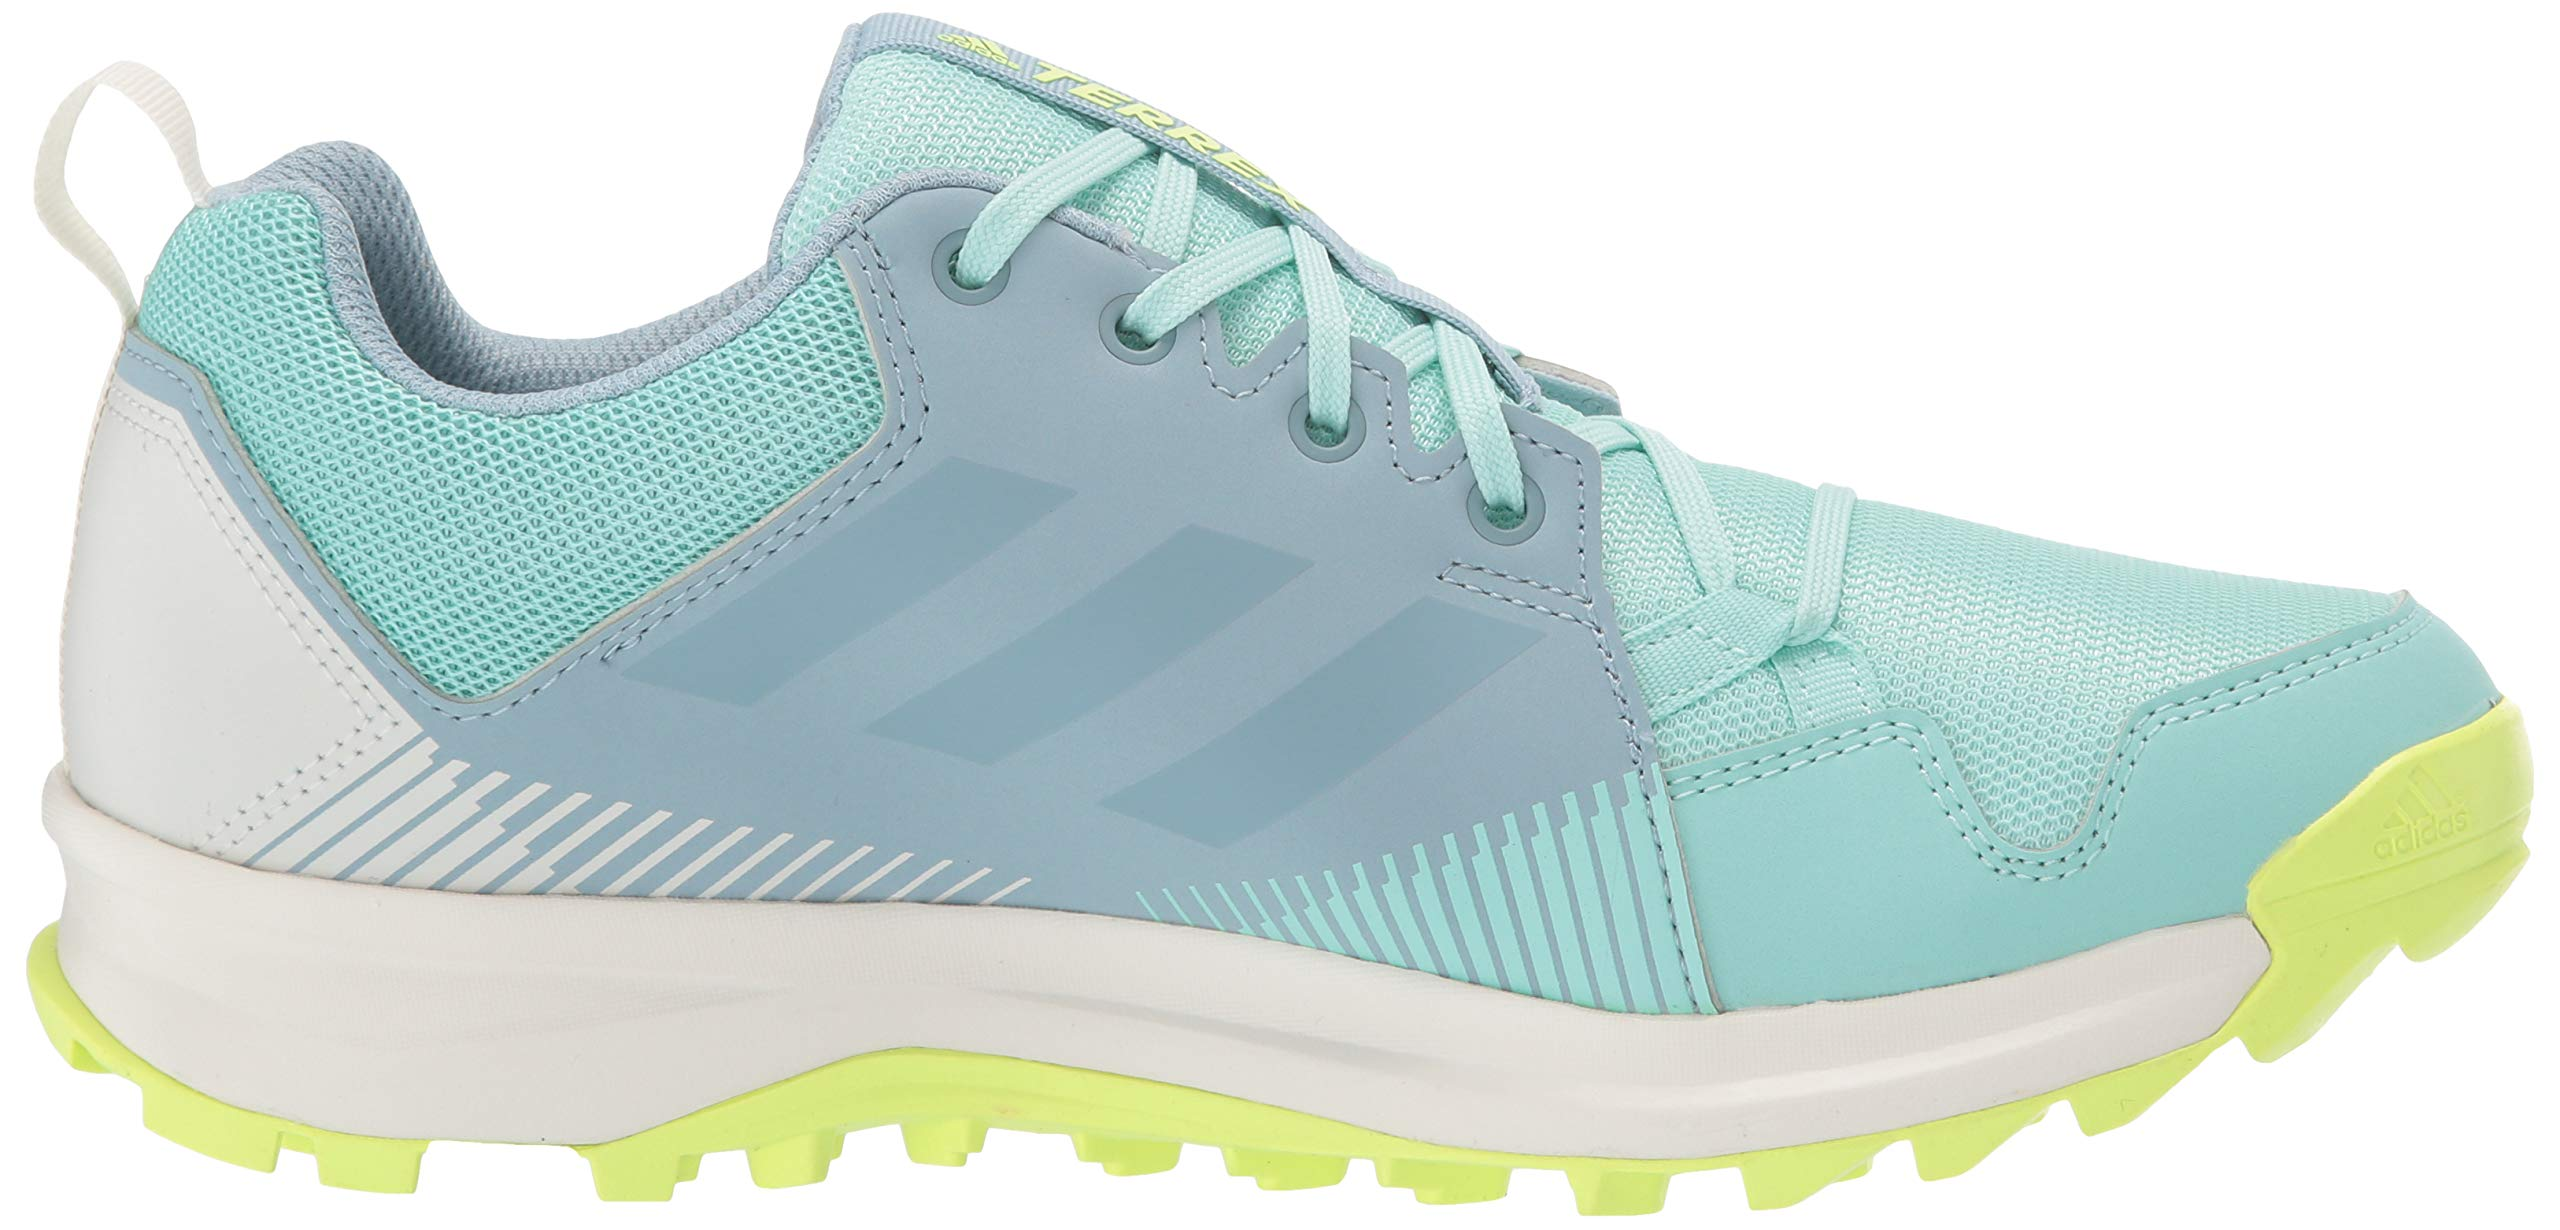 adidas outdoor Women's Terrex Tracerocker Trail Running Shoe